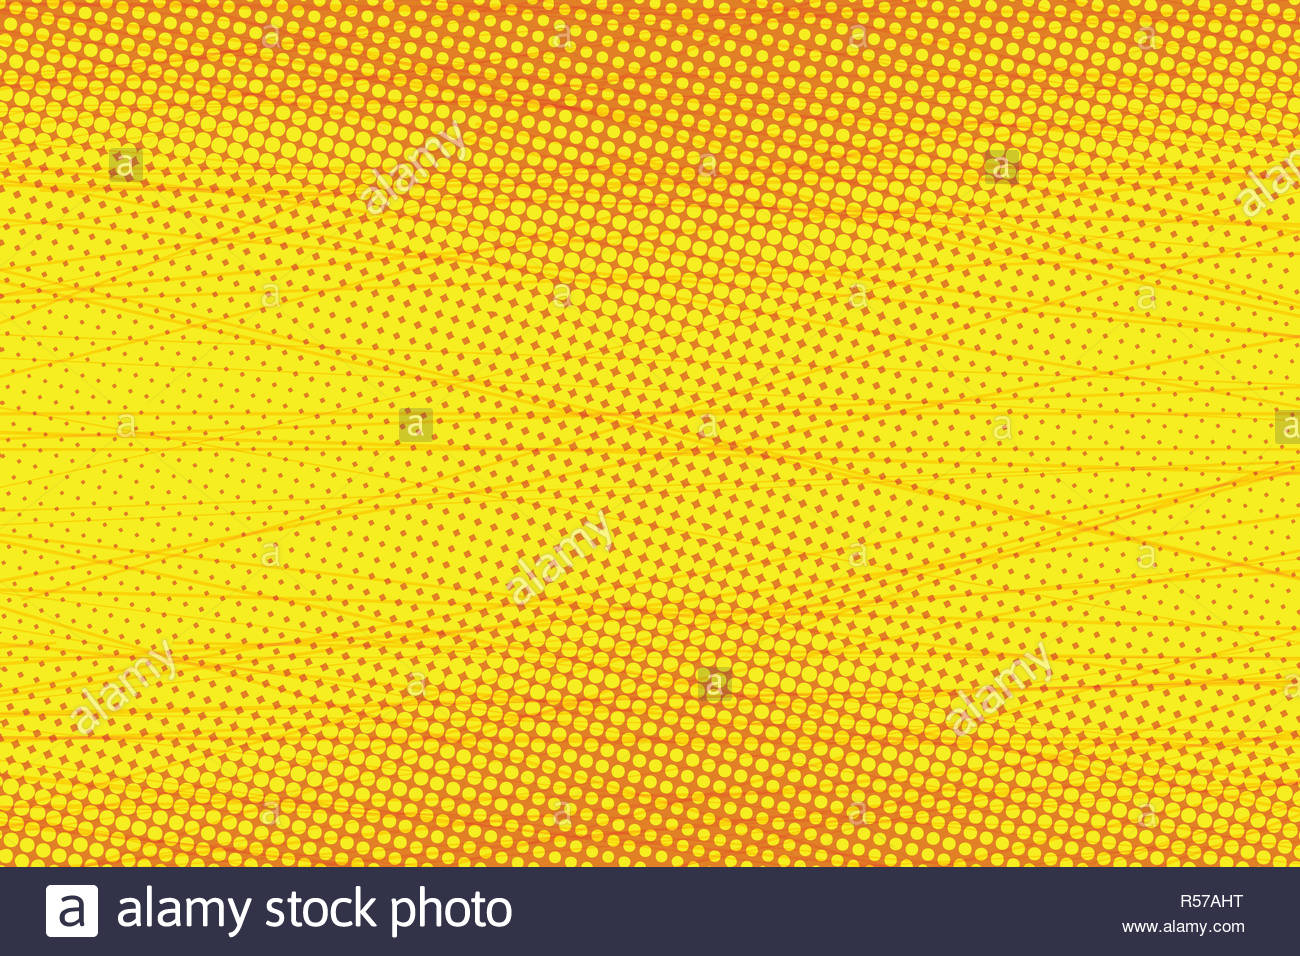 yellow Scratch touches pop art background Stock Photo 226970068 1300x956